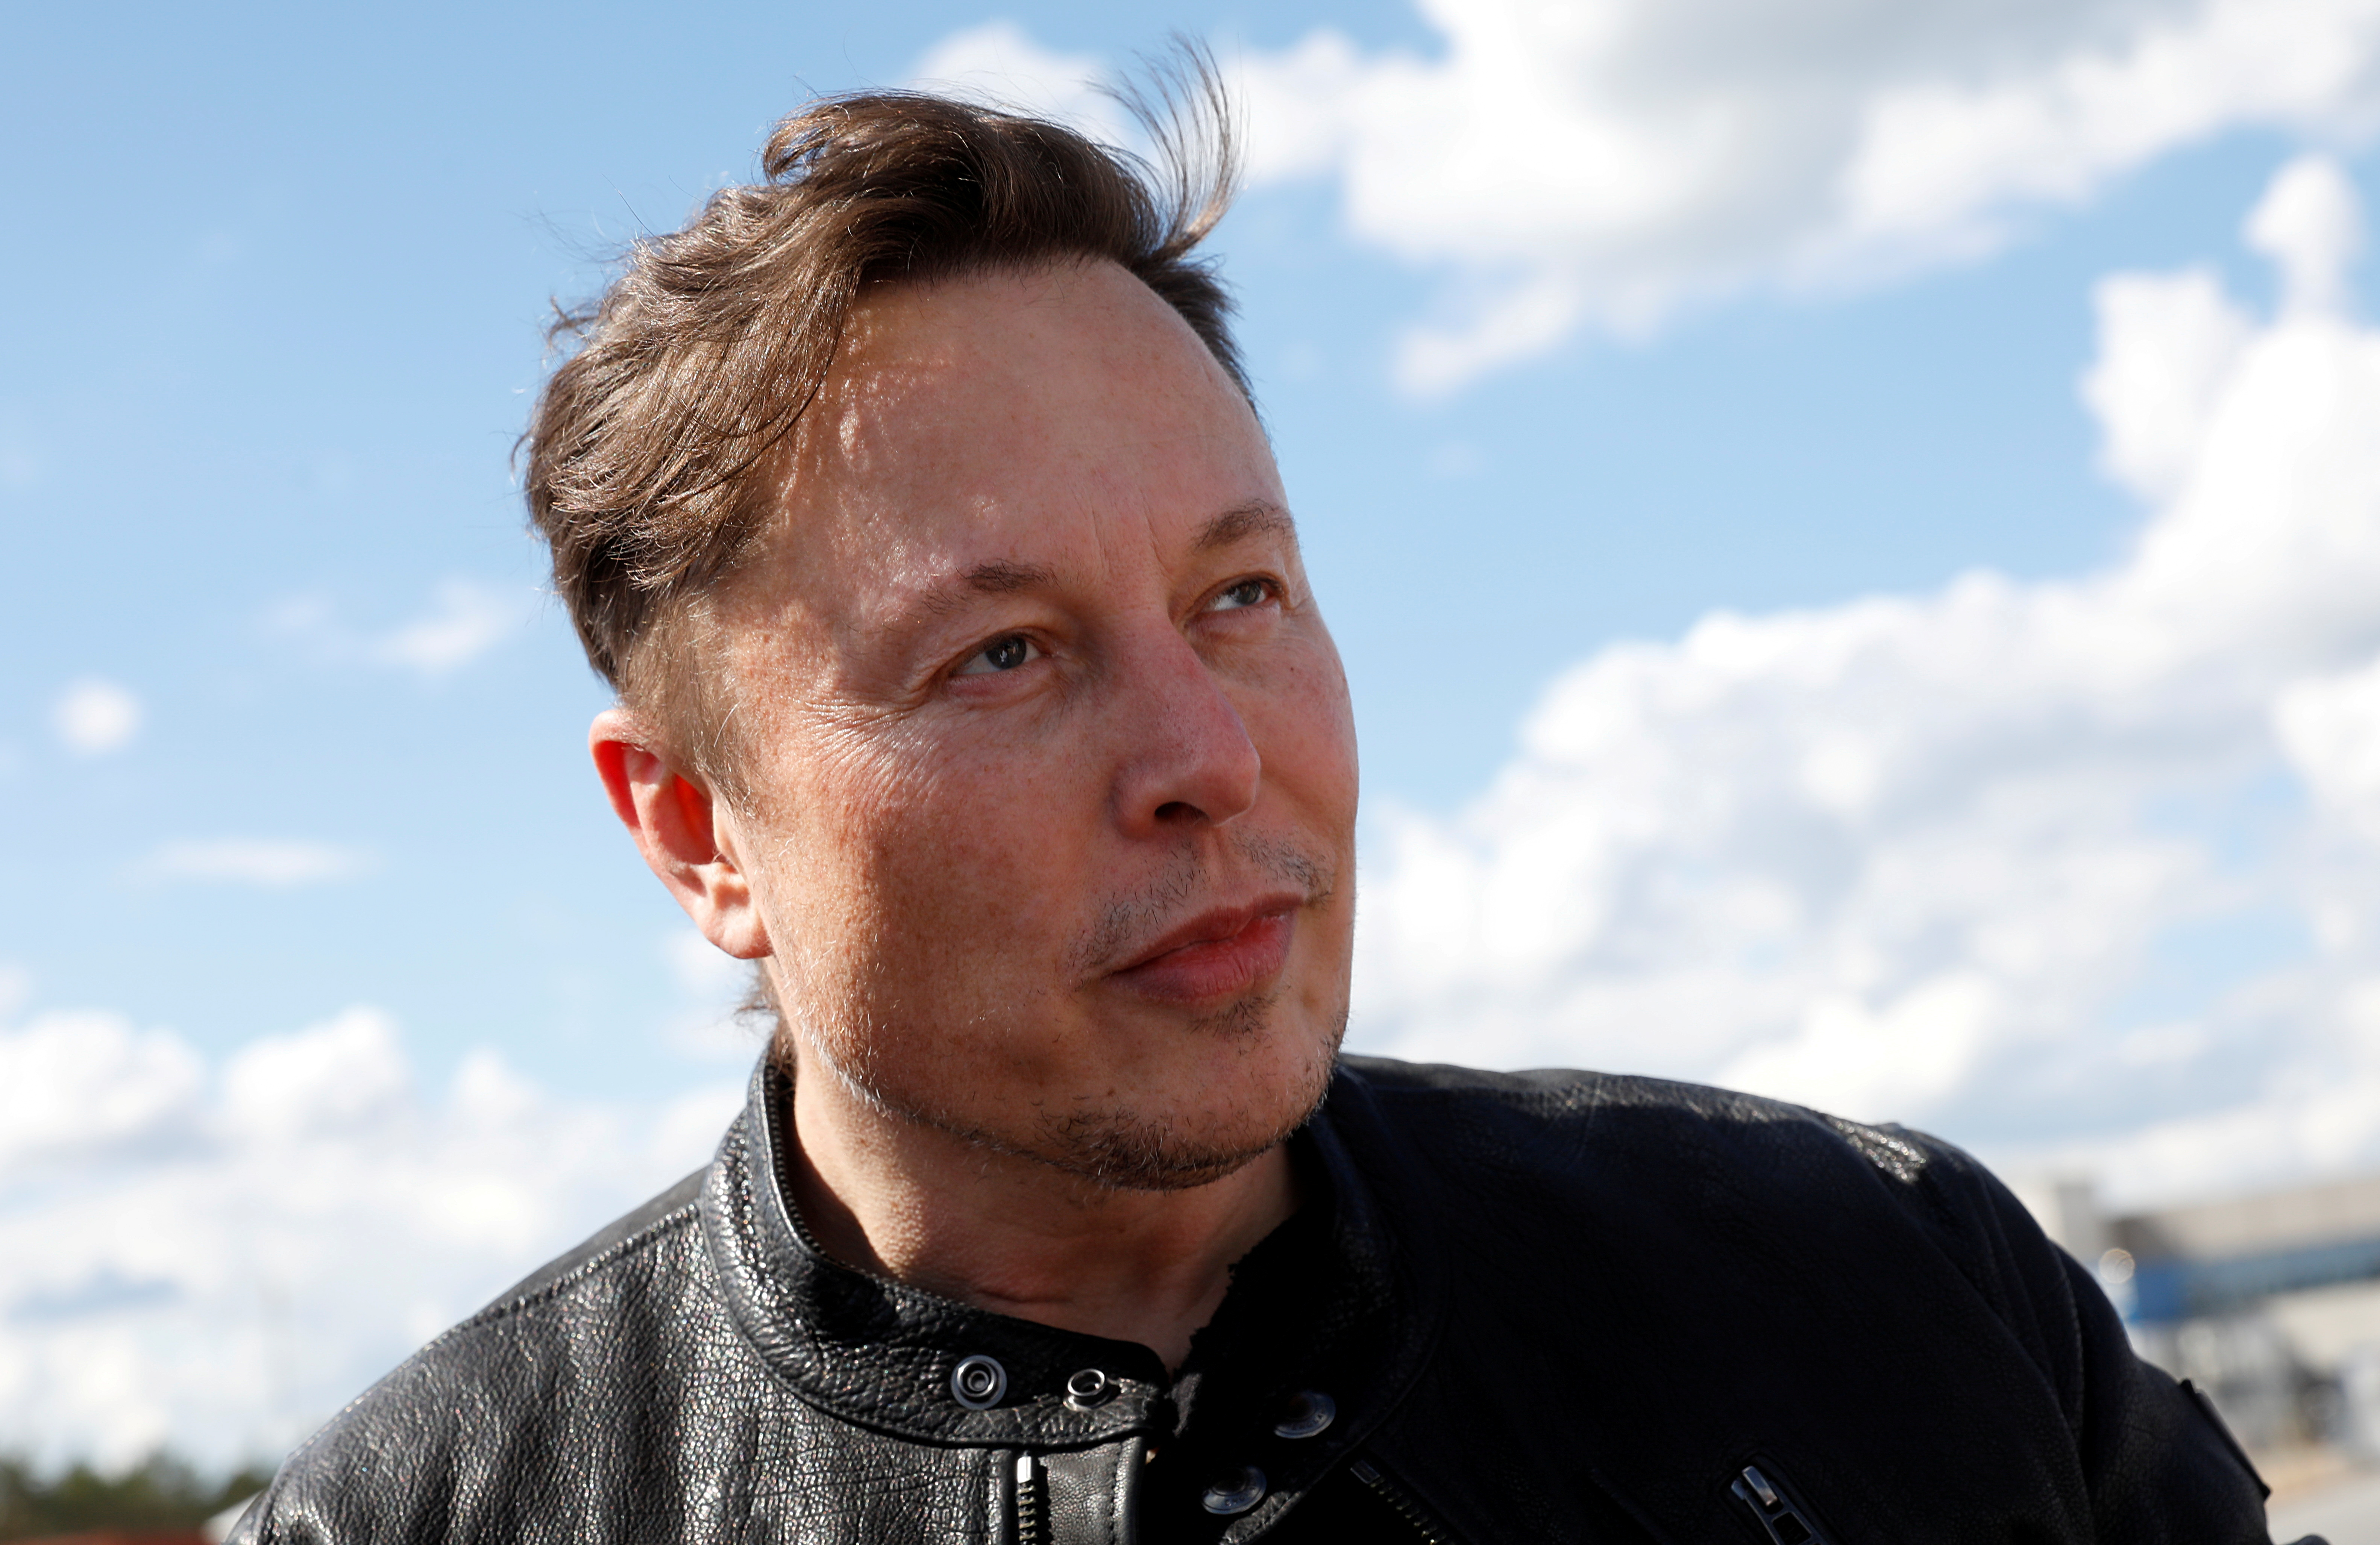 SpaceX founder and Tesla CEO Elon Musk looks on as he visits the construction site of Tesla's gigafactory in Gruenheide, near Berlin, Germany, May 17, 2021. REUTERS/Michele Tantussi/File Photo